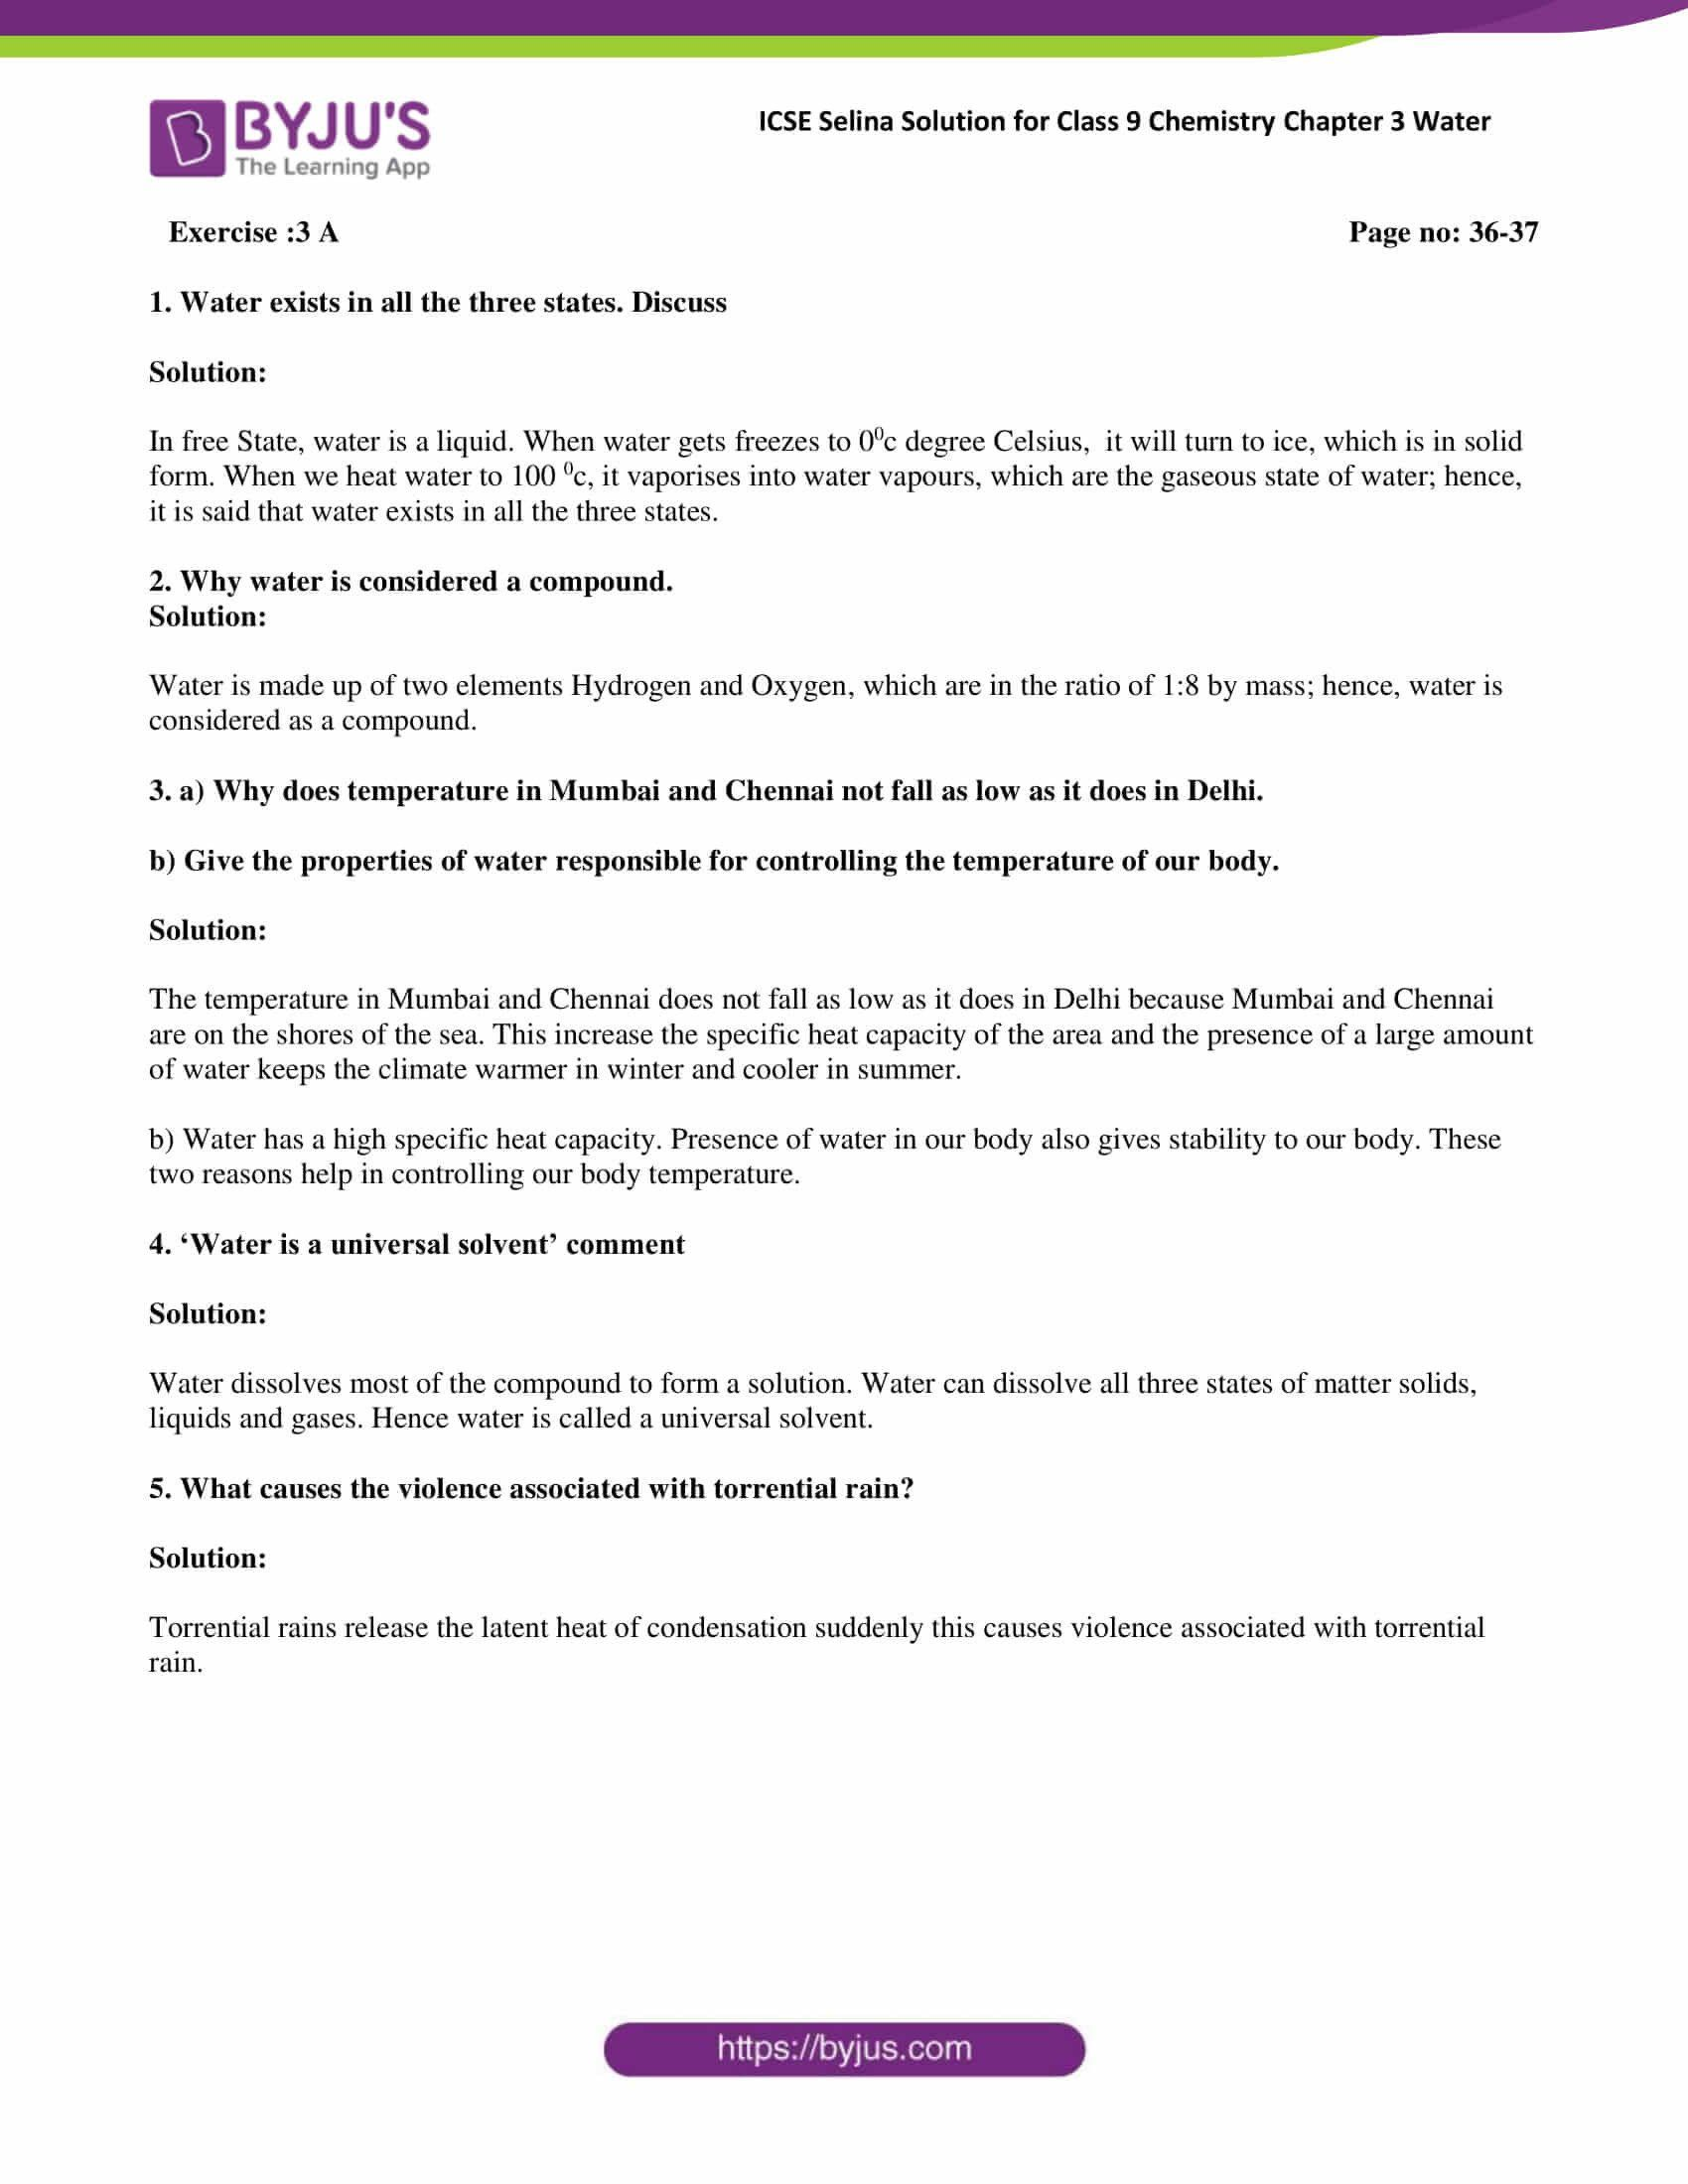 Properties Of Water Worksheet Answers Selina Solutions Class 9 Concise Chemistry Chapter 3 Water In 2020 Worksheets Radical Equations Answers